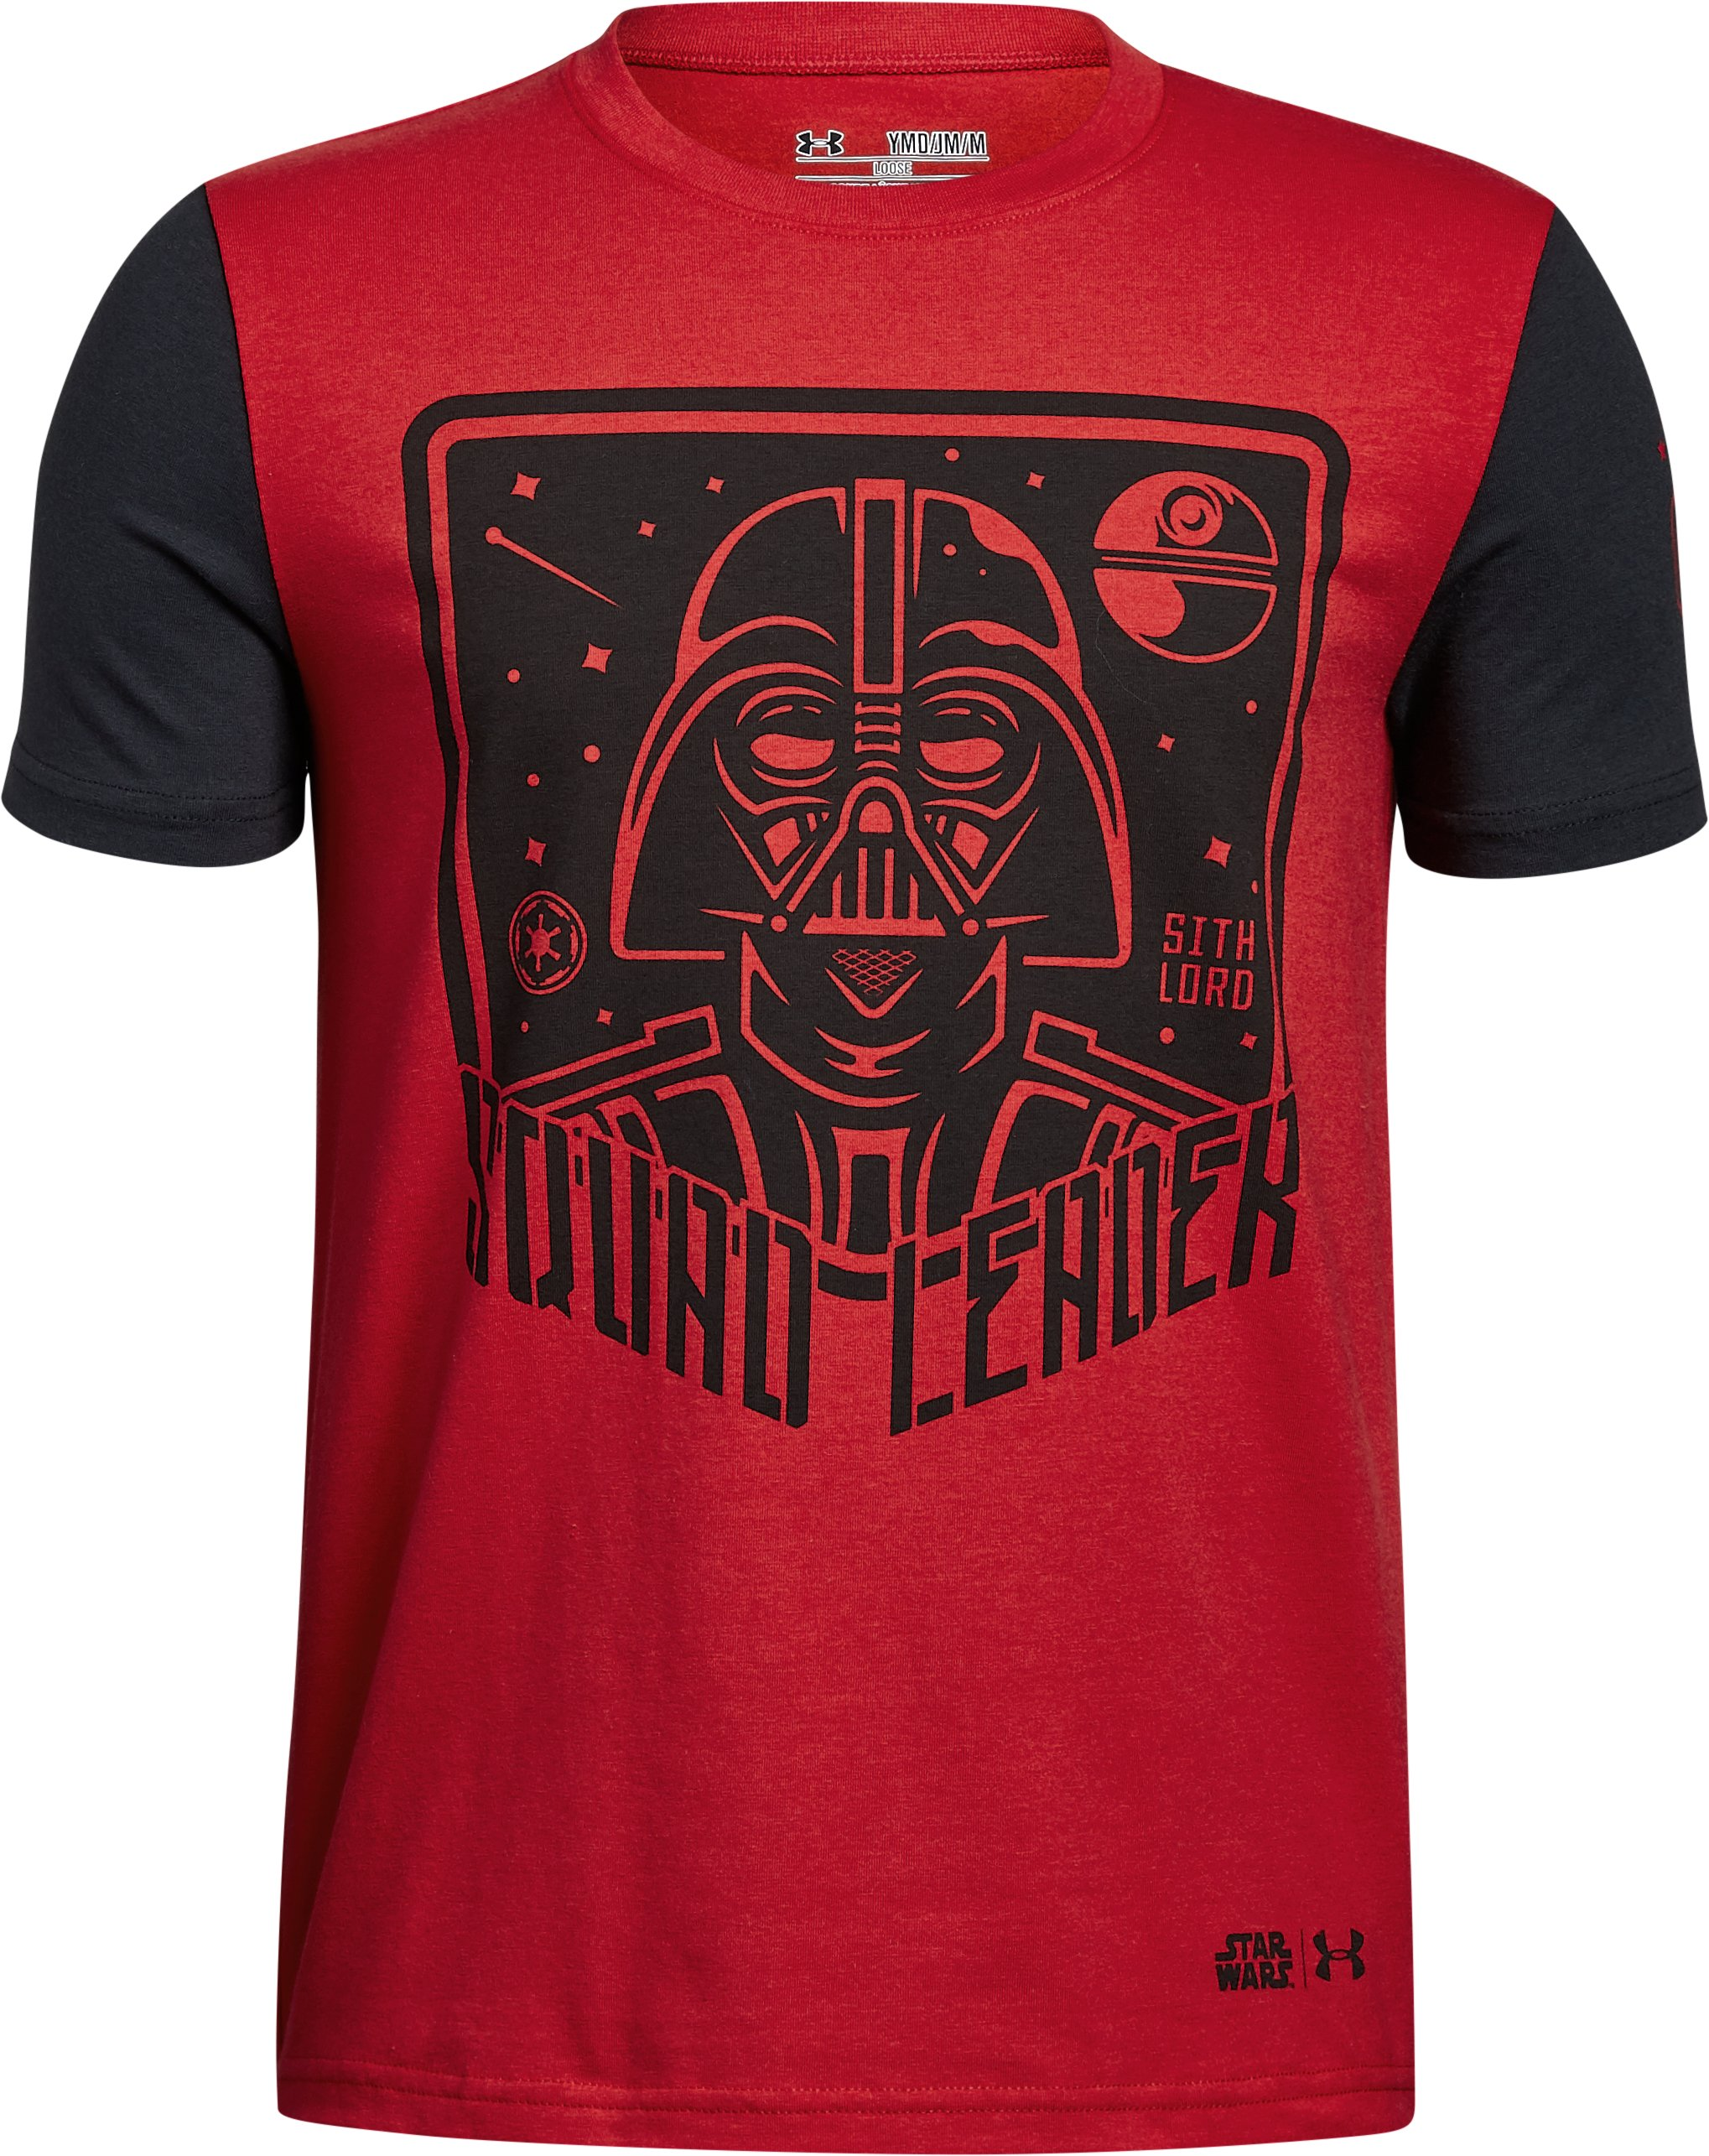 youth large t shirts Boys' Star Wars UA Squad Leader T-Shirt As always, under armour delivers perfection in this item....Fits great, 10 year old loves it....Awesome shirt!